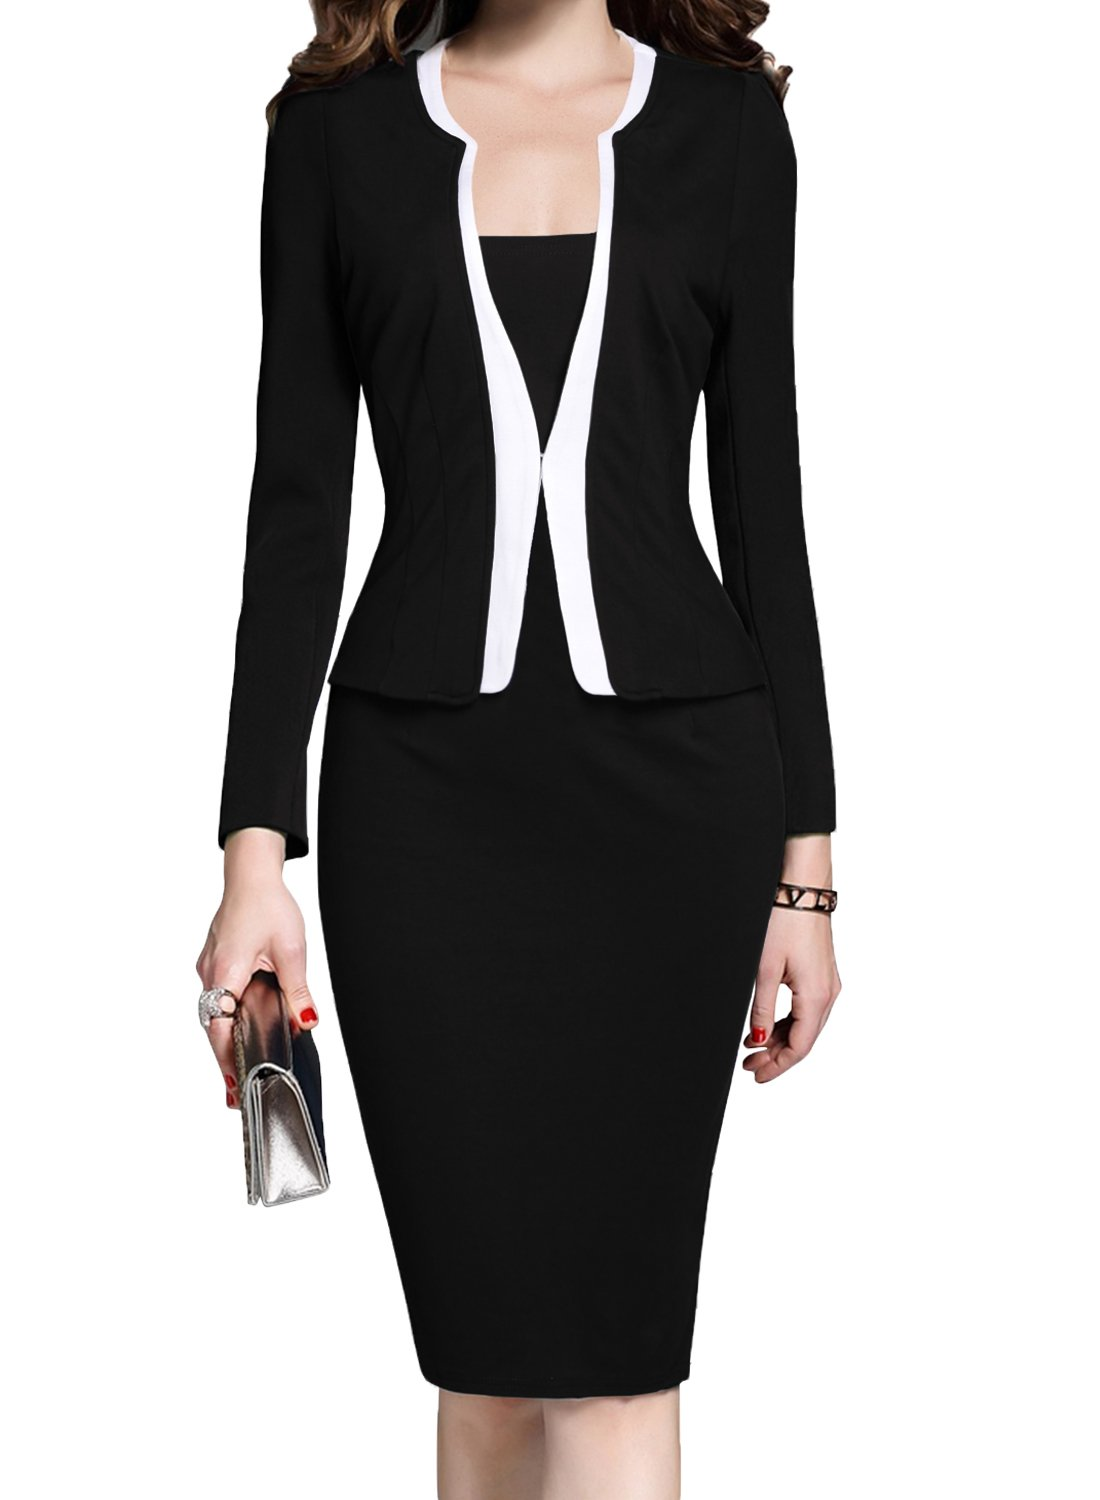 MUSHARE Women's Colorblock Wear to Work Business Party Bodycon One-Piece Dress (XX-Large, Black)